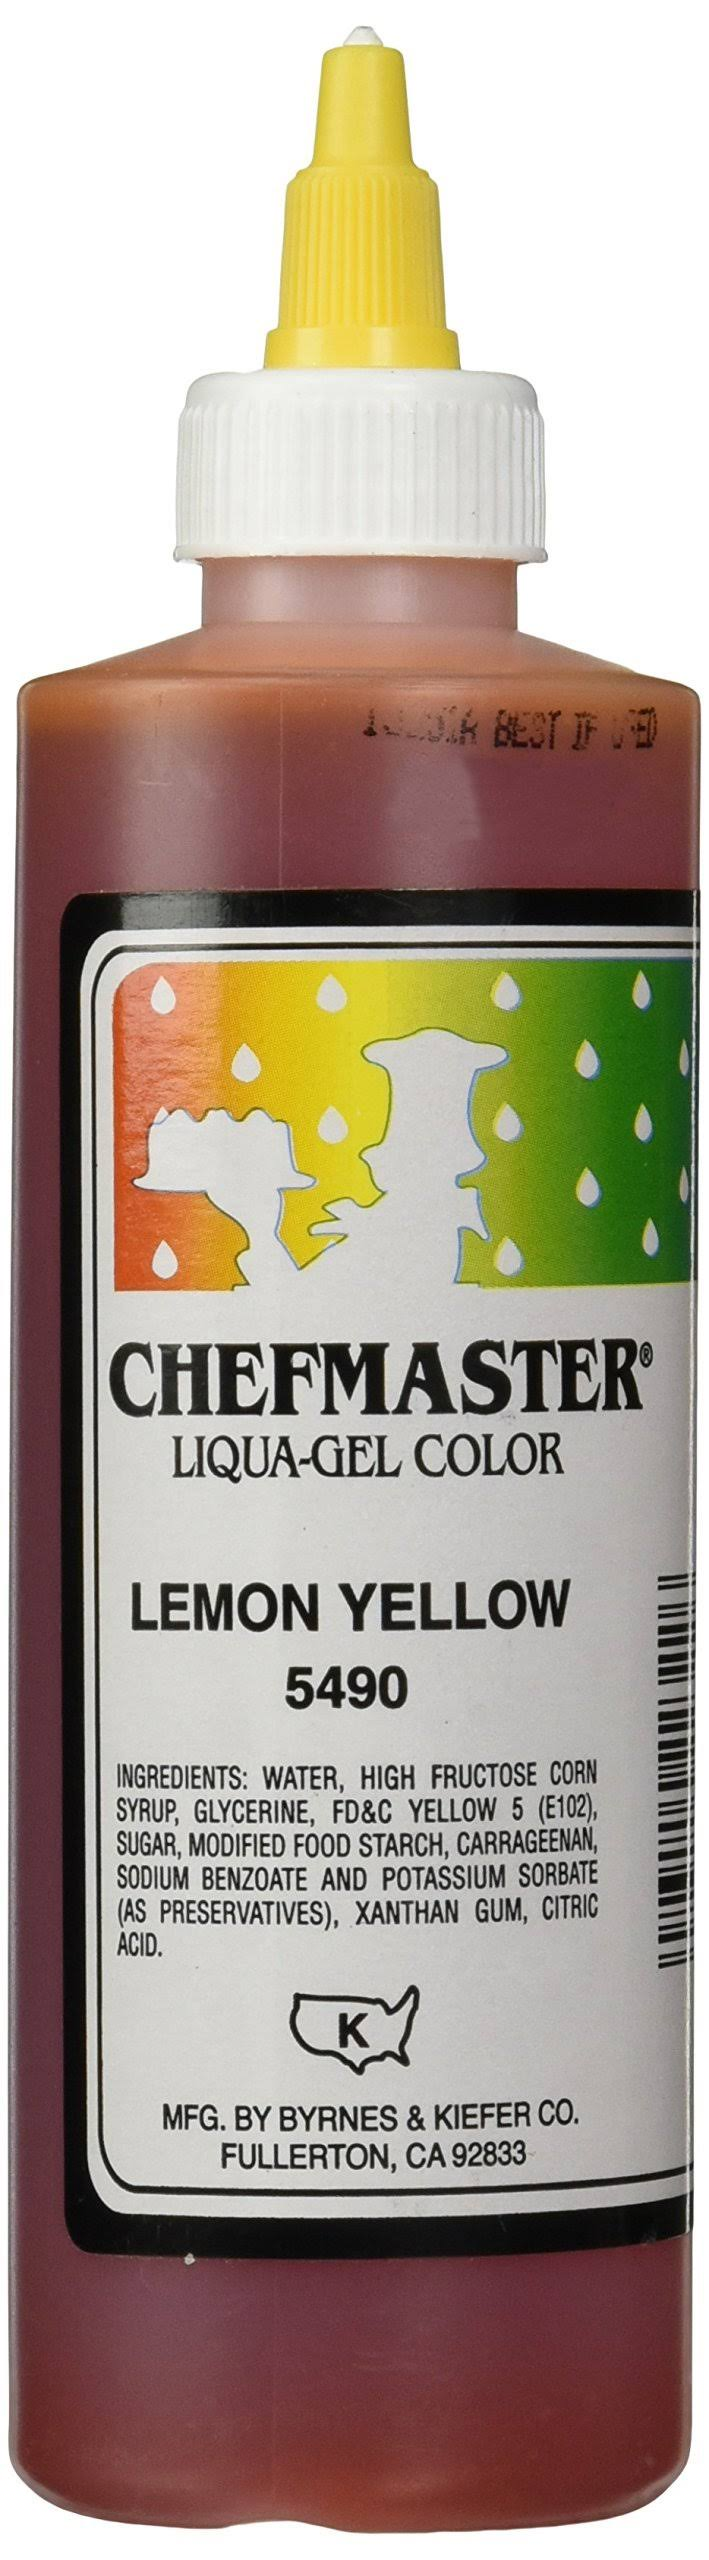 Chefmaster Liqua-Gel Food Color 10.5-Ounce Lemon Yellow